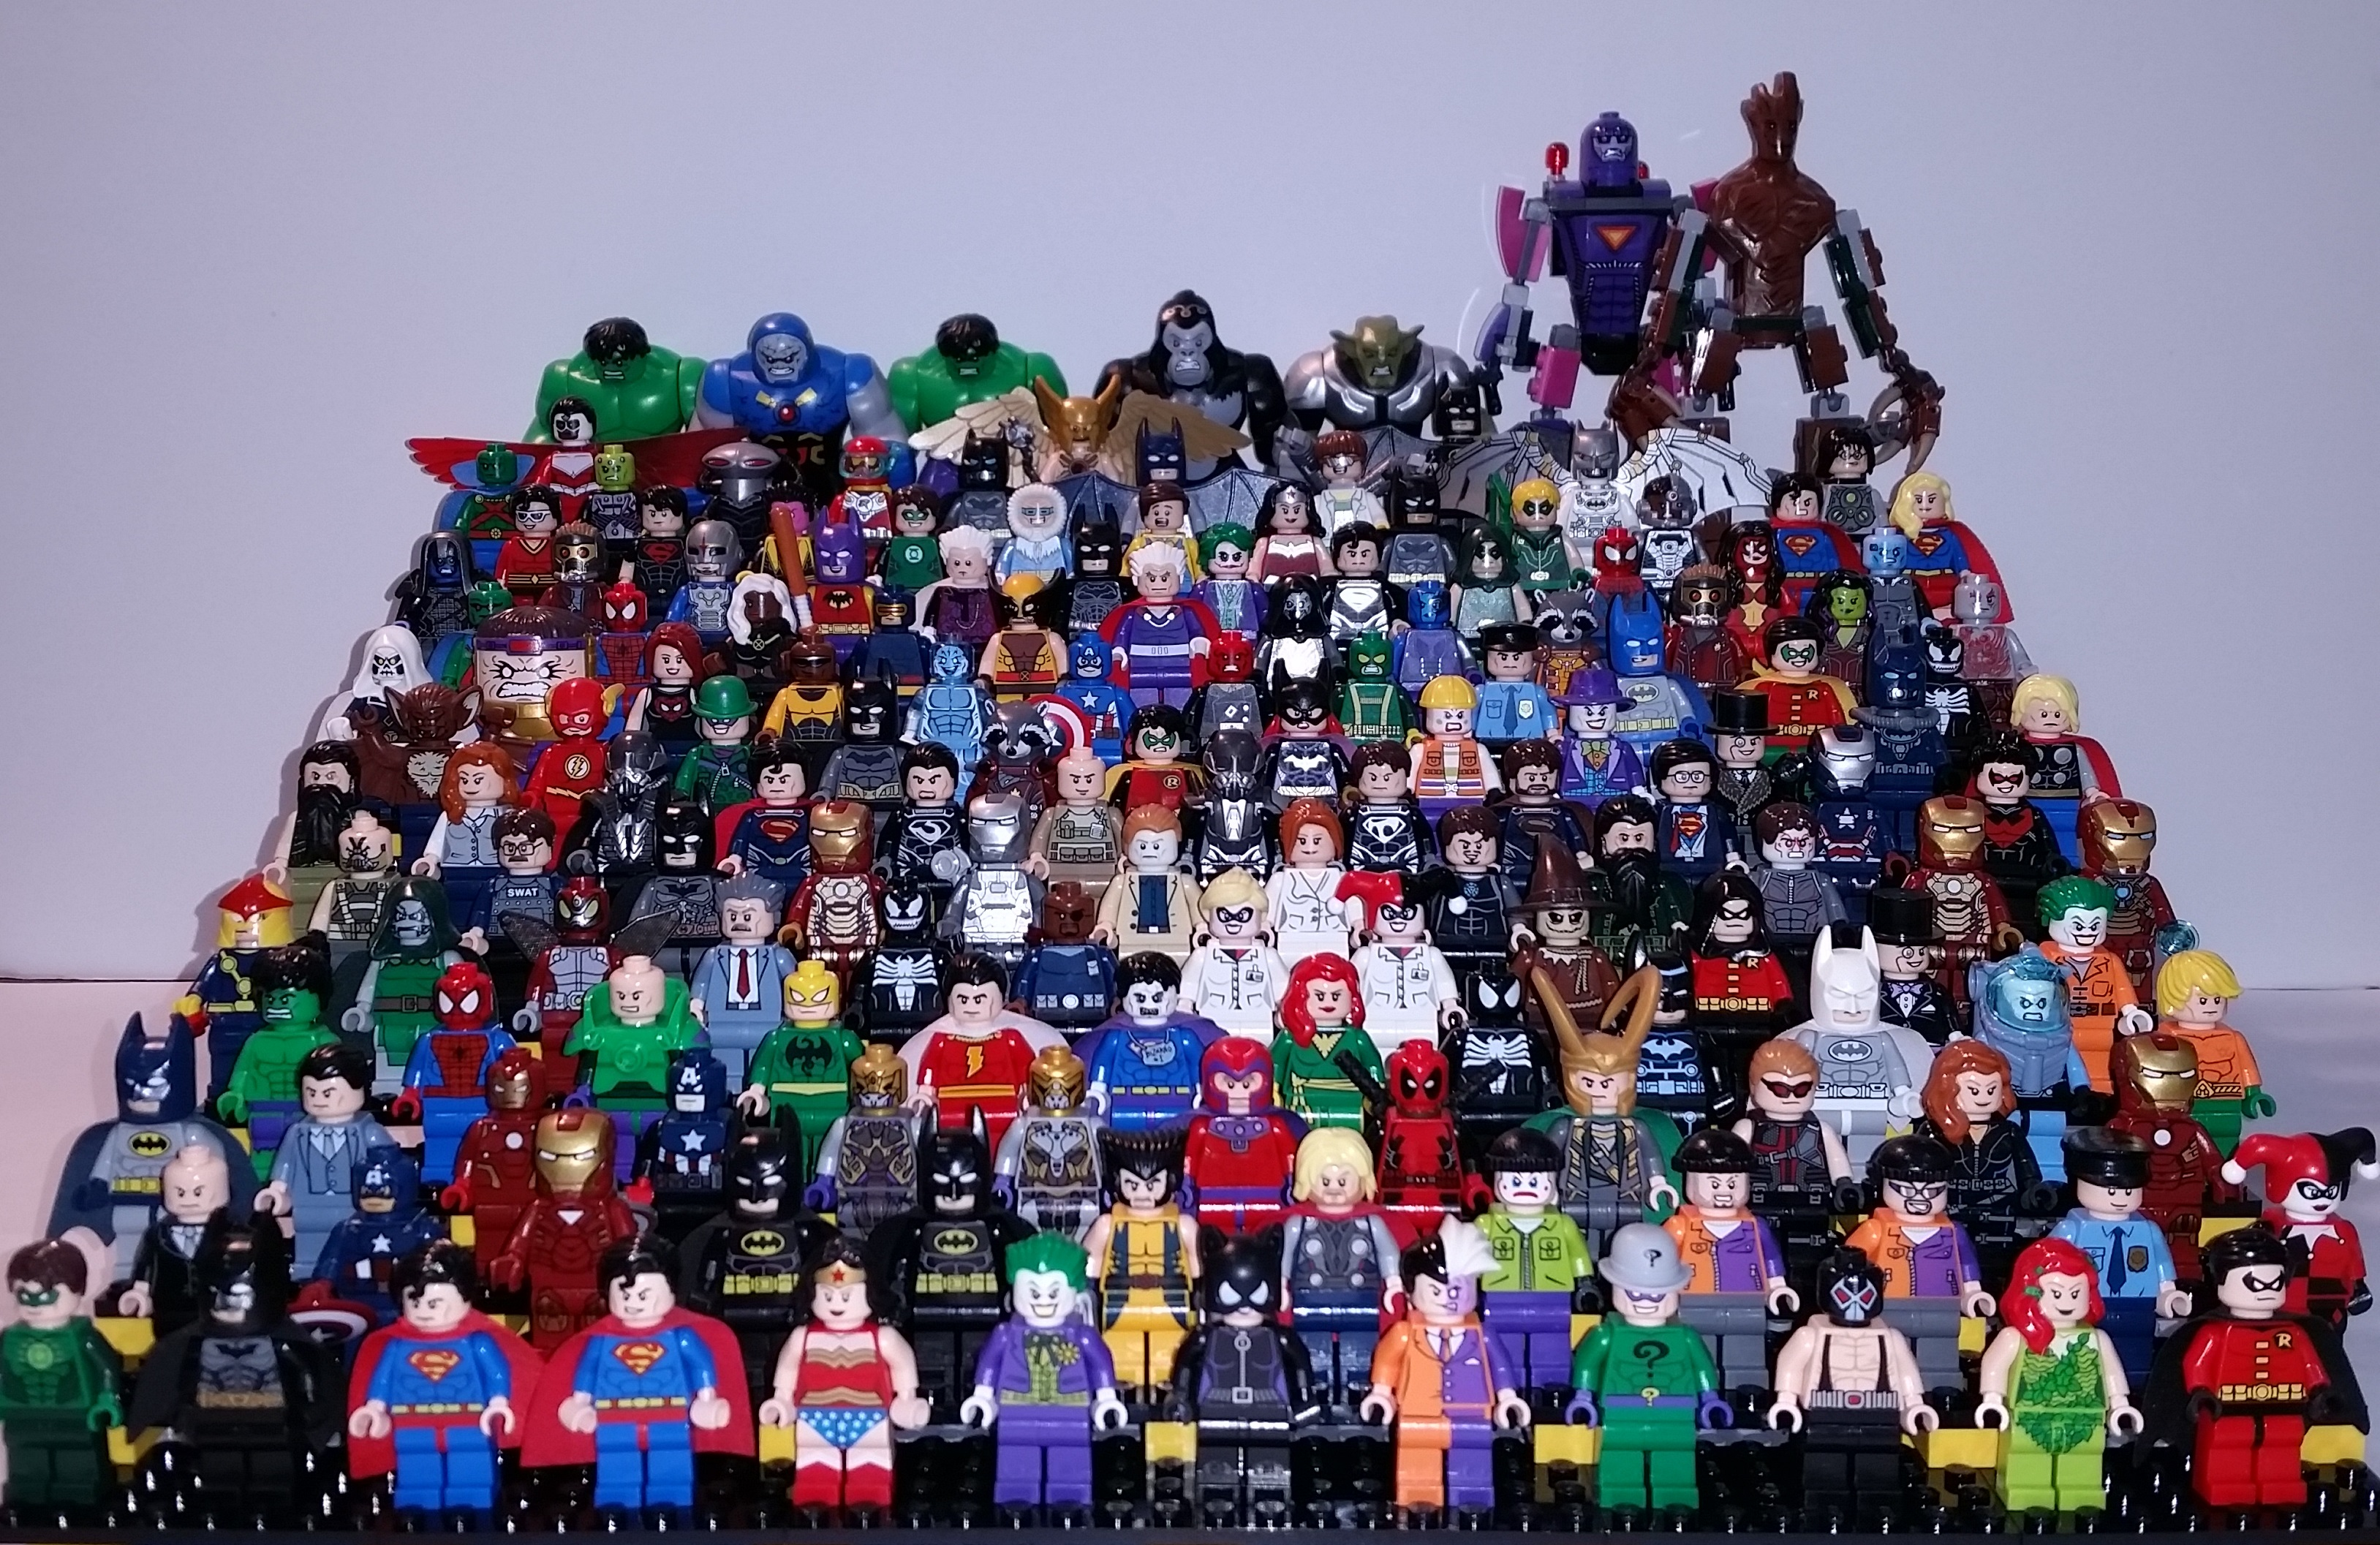 All Lego Toys : All lego super hero minifigures in one picture quick